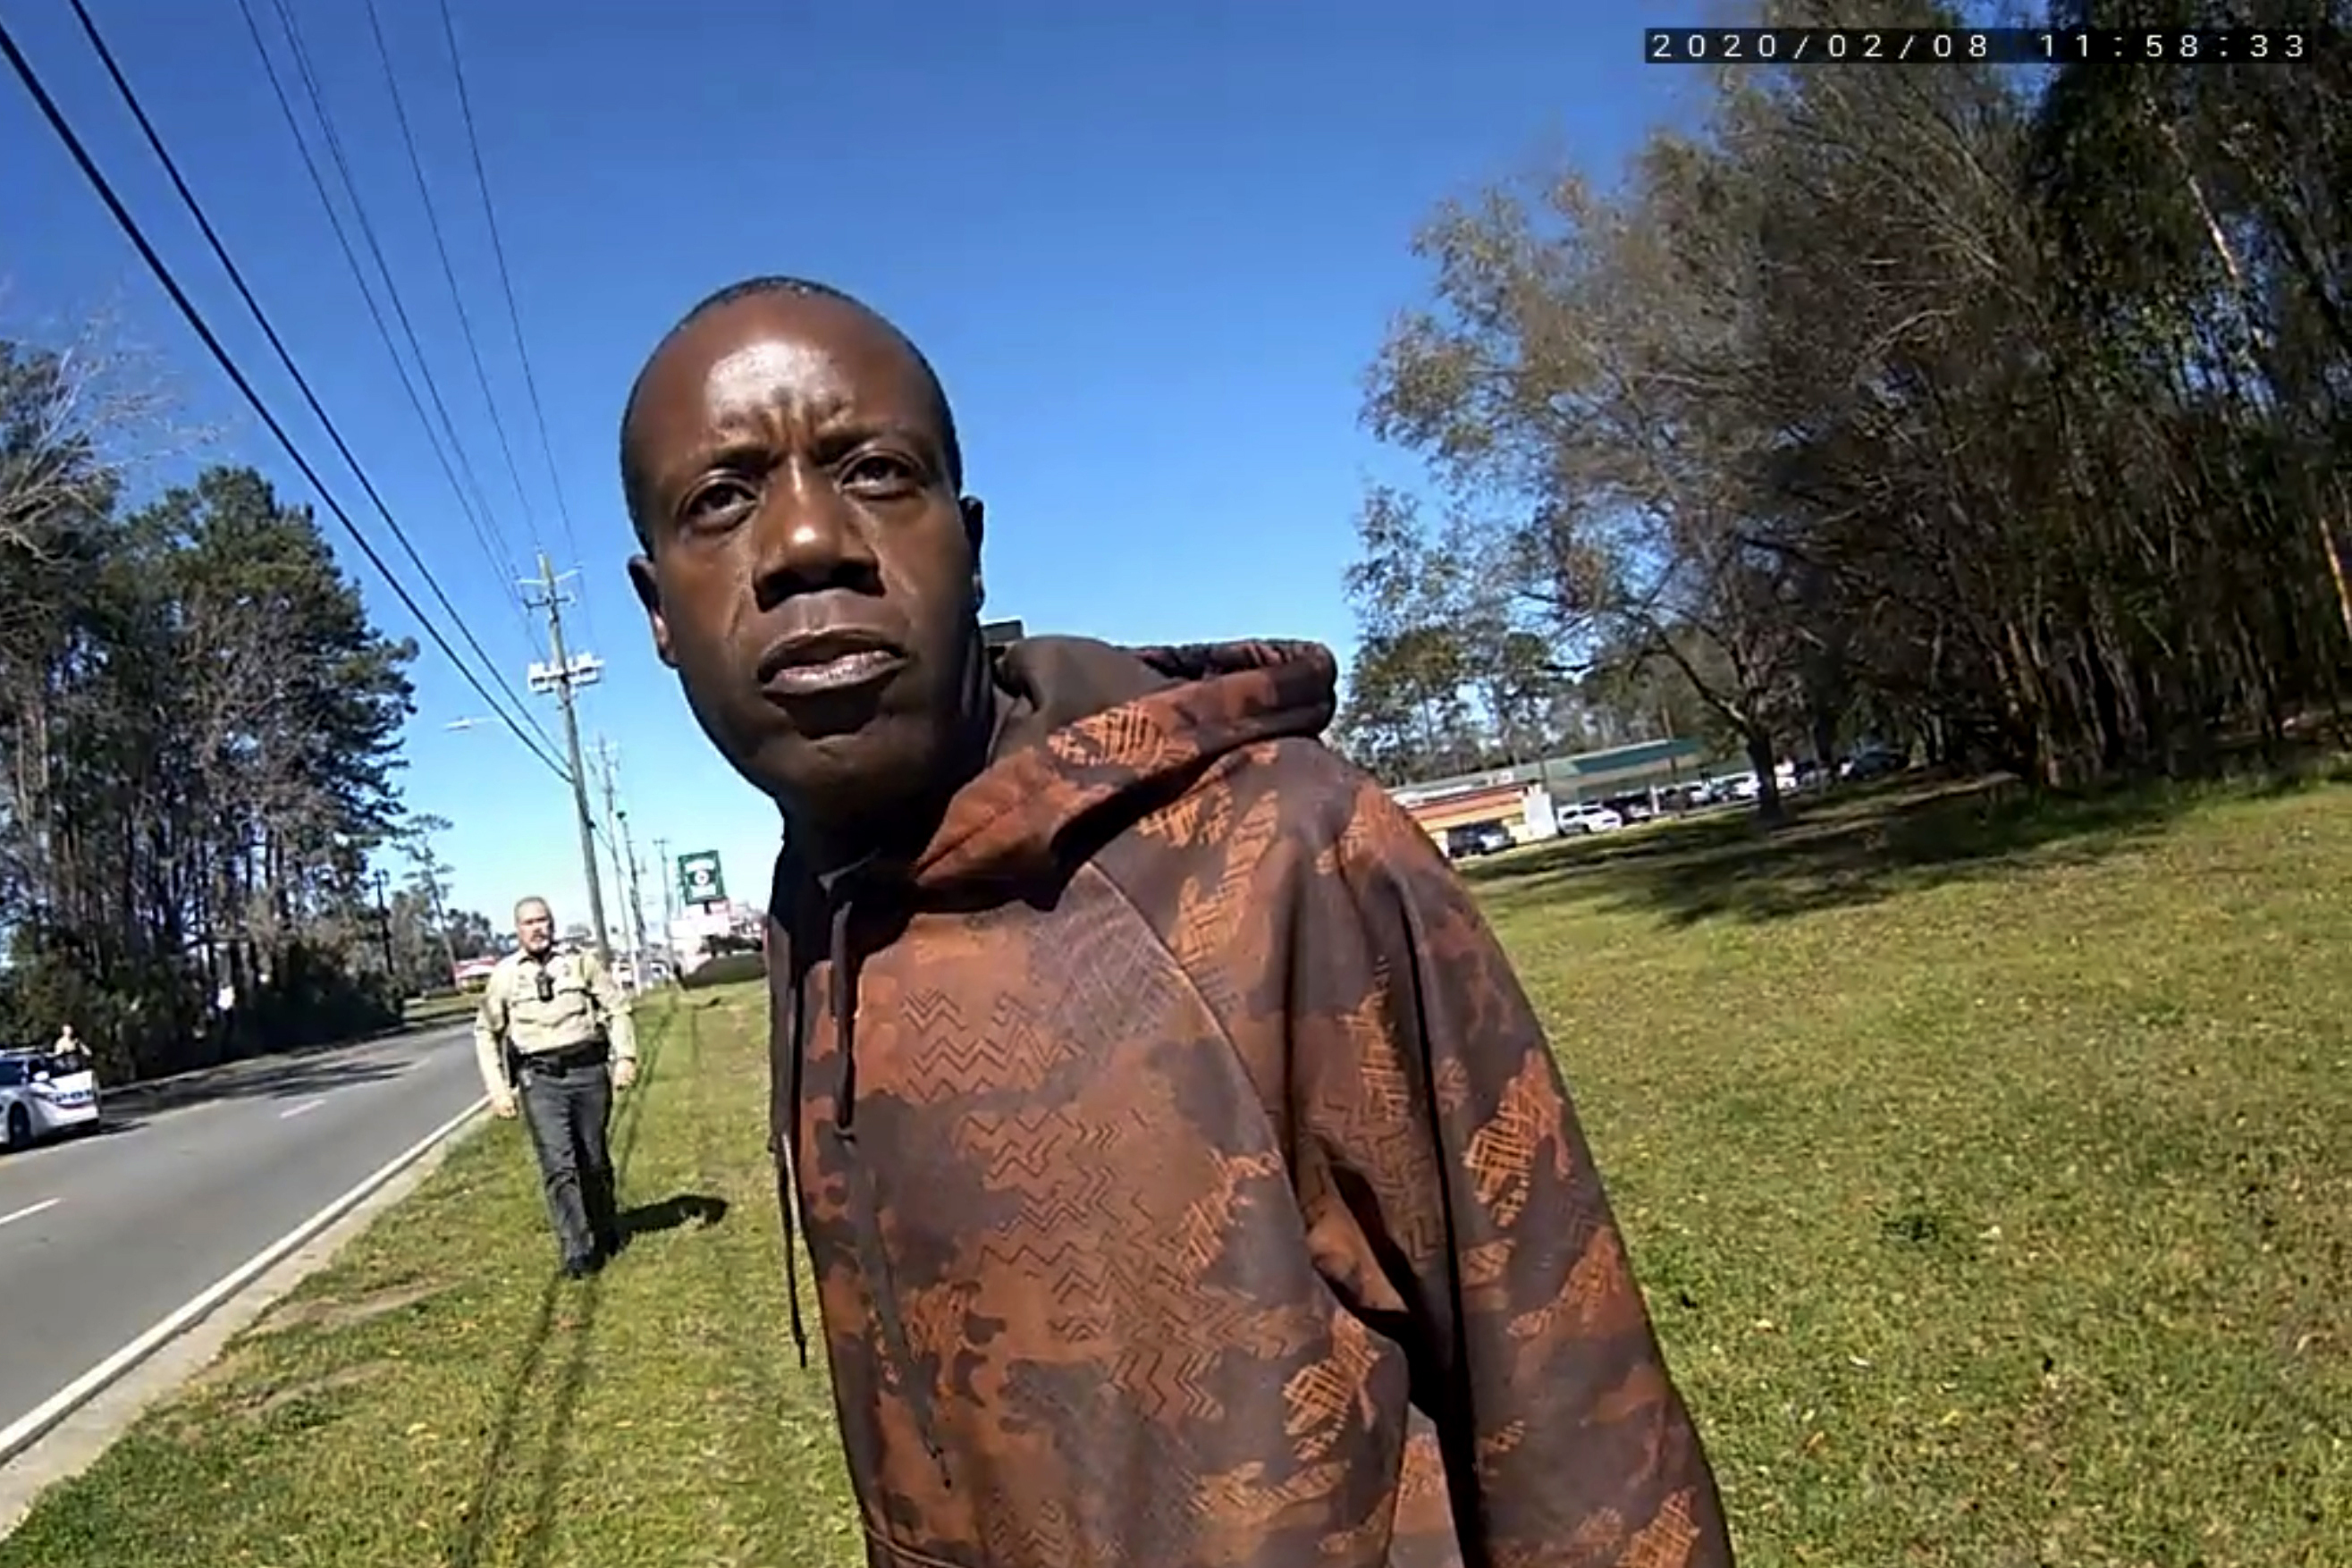 In this still image from a body camera video released by the Valdosta police, Antonio Arnelo Smith speaks to an officer as Sgt. Billy Wheeler approaches him from behind in Valdosta, Ga., on Feb. 8, 2020.